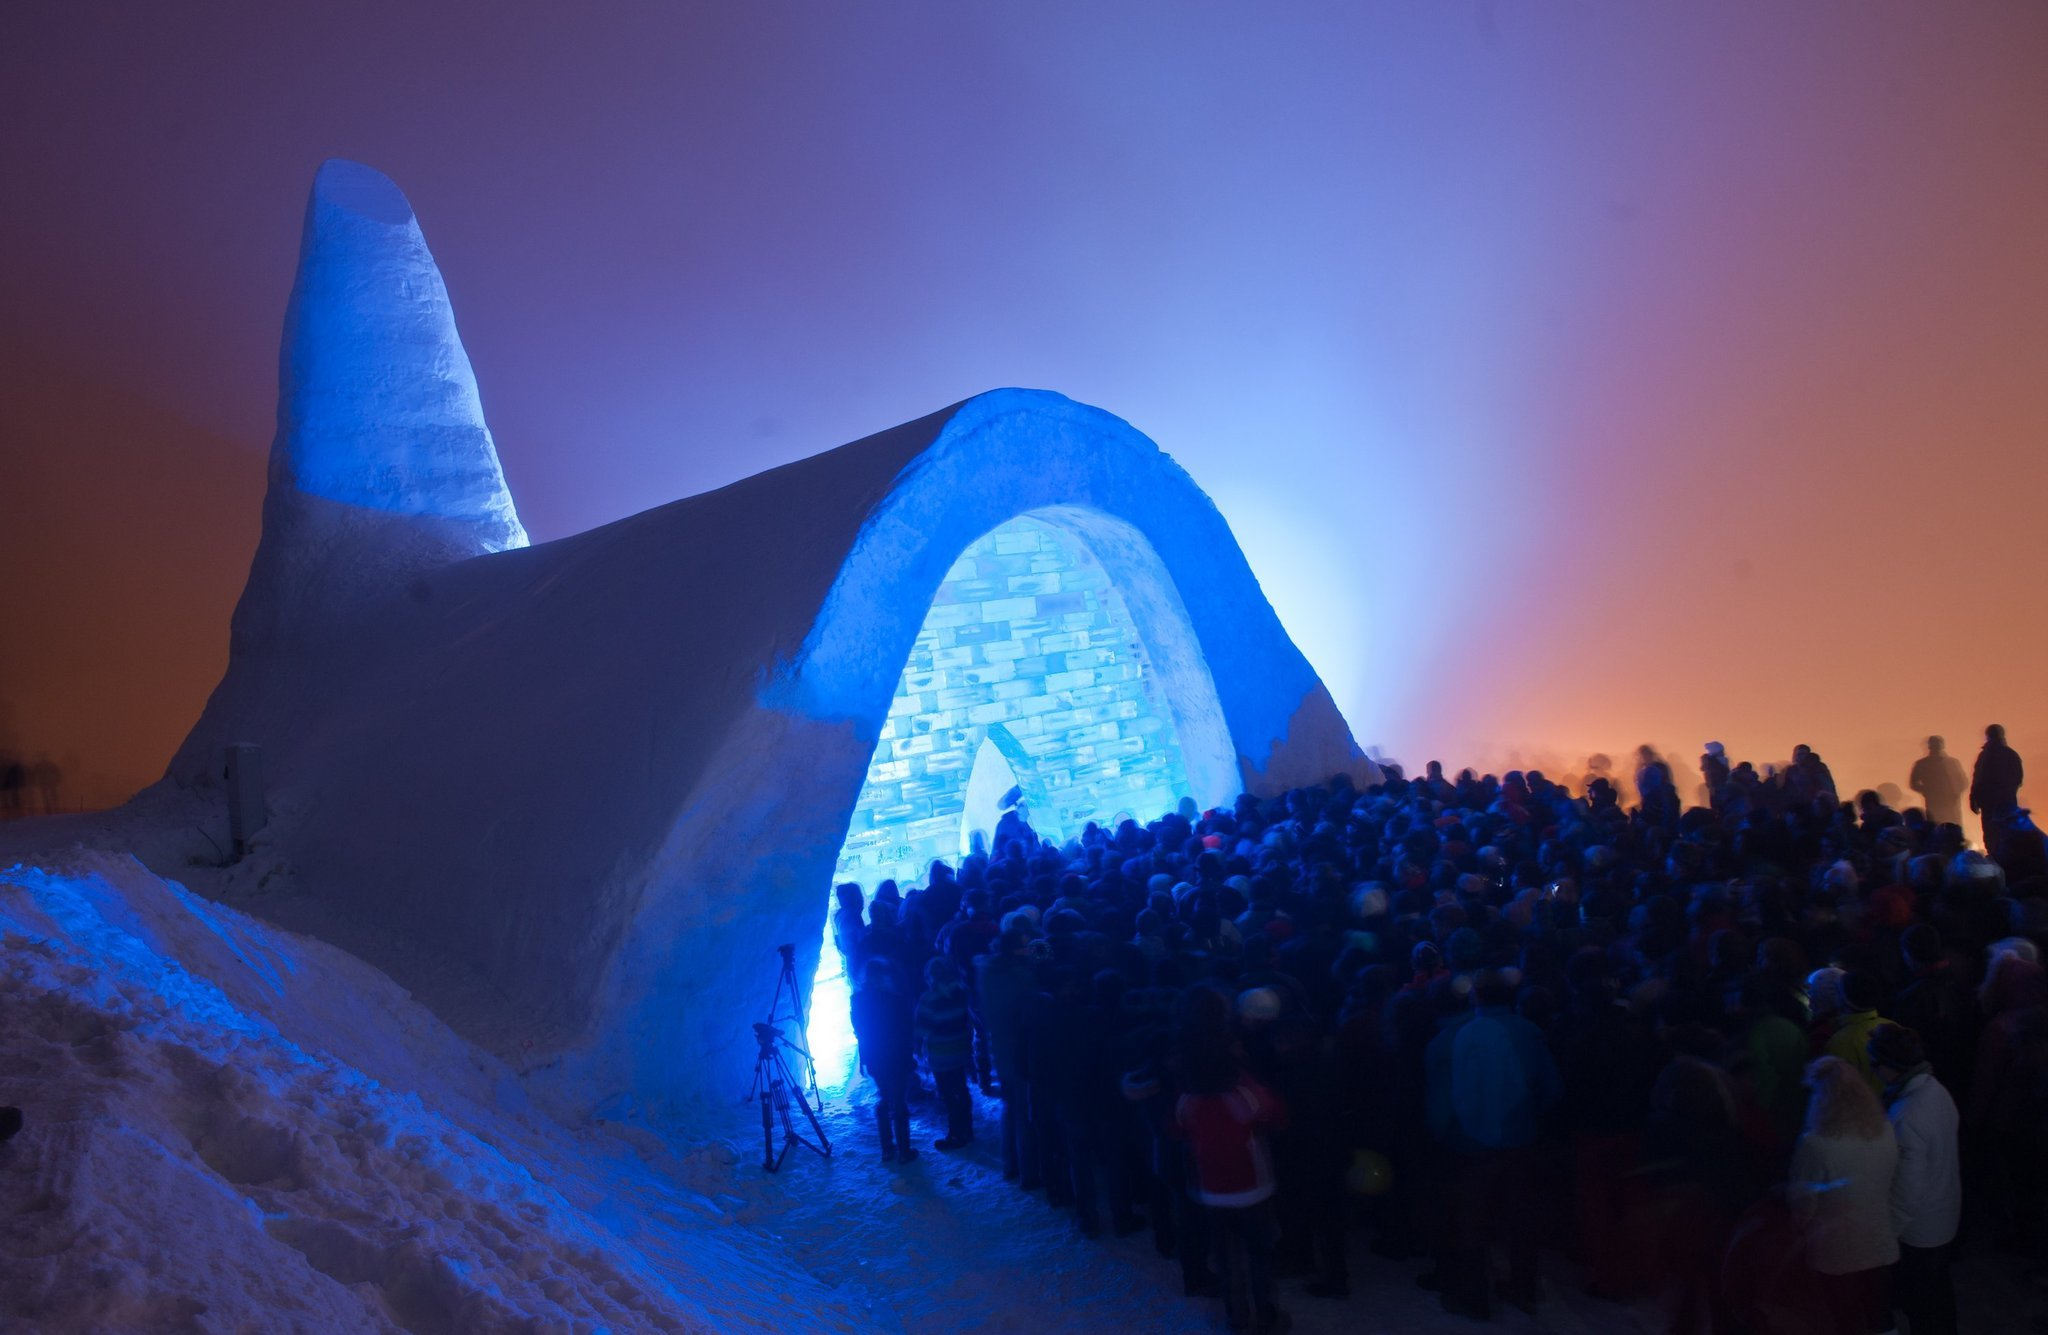 Offbeat Traveler: Church of snow and ice opens in Bavaria, Germany - Opening day